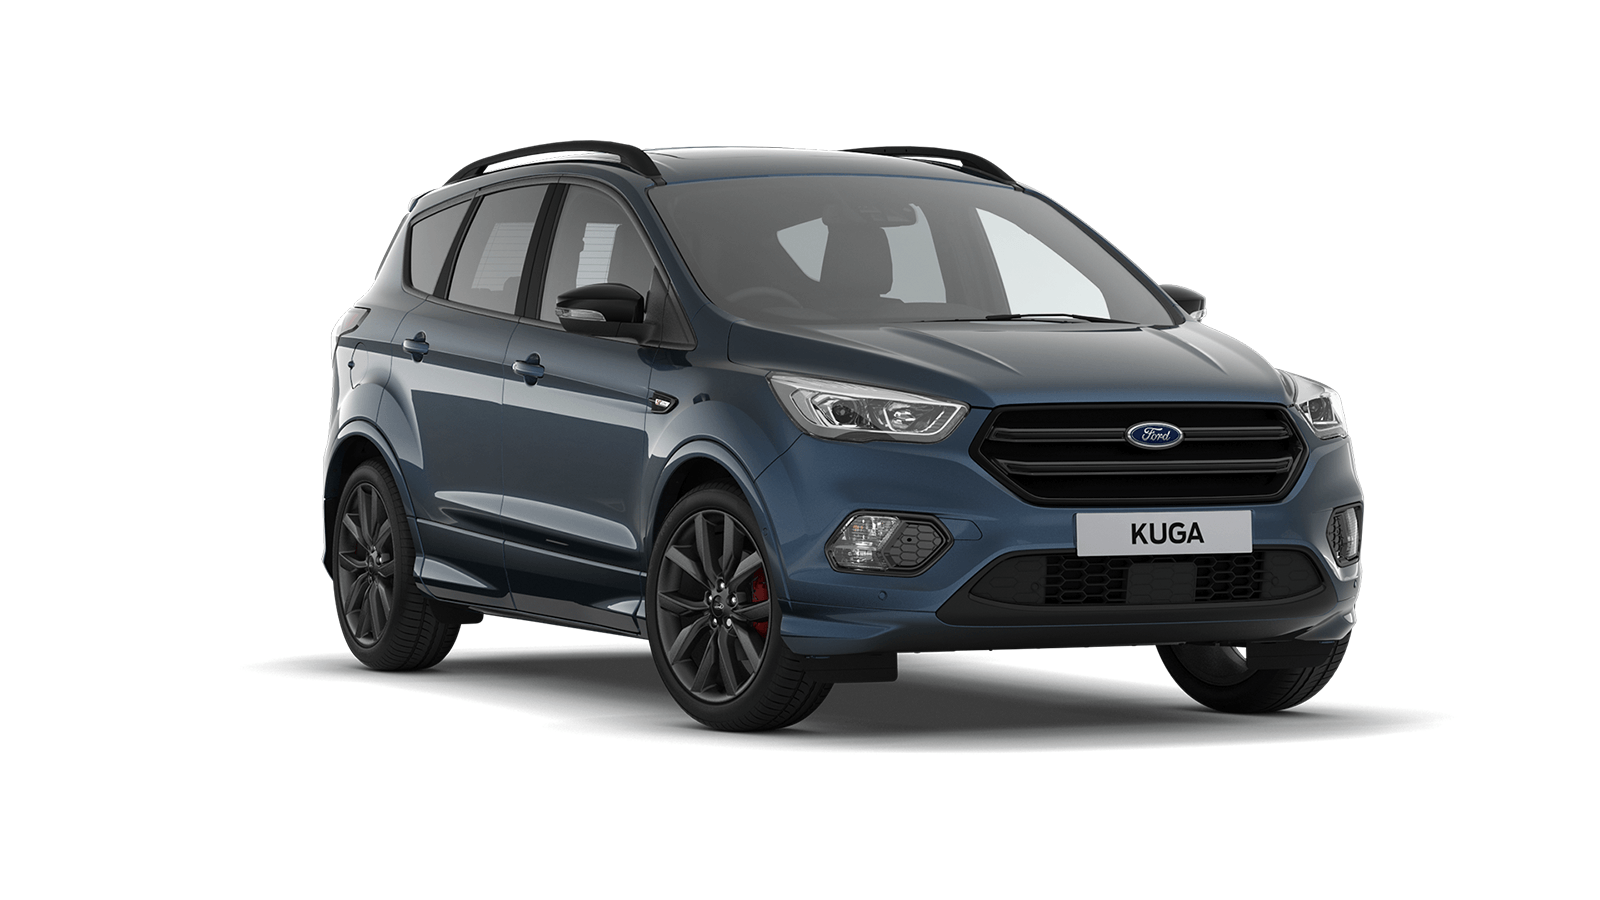 https://www.dealerinternet.co.uk/images/KUGA/2019.25/5%20Door/ST-LineEdition/CHROME-BLUE.png